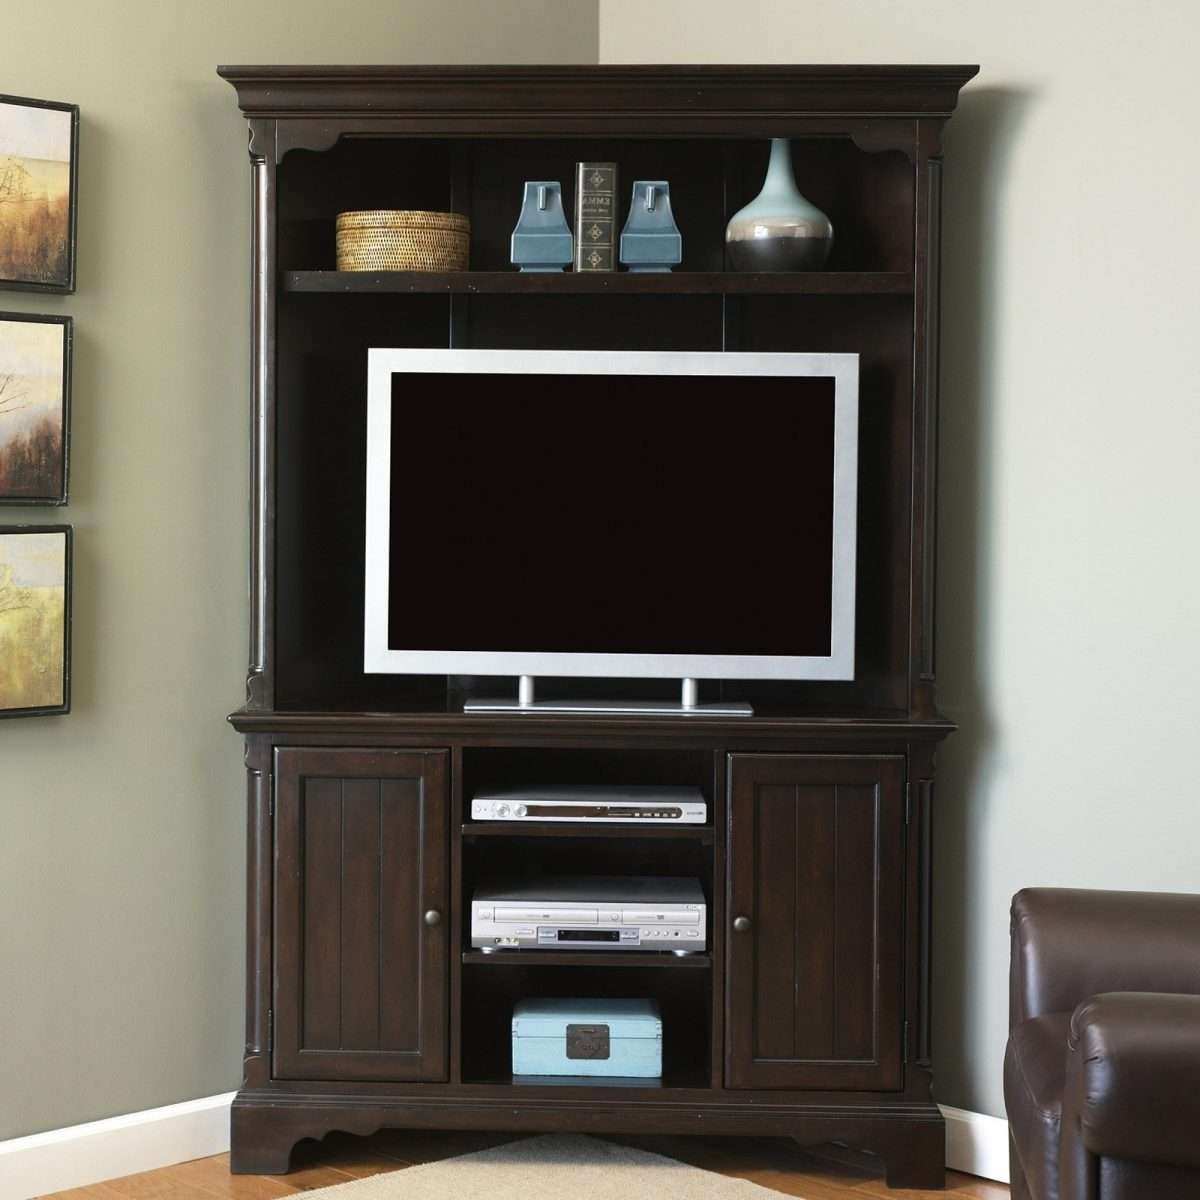 Tall Corner Tv Stand White Uniqueer Armoirec2A0 Photos Concept Regarding Corner Tv Cabinets For Flat Screens With Doors (View 18 of 20)